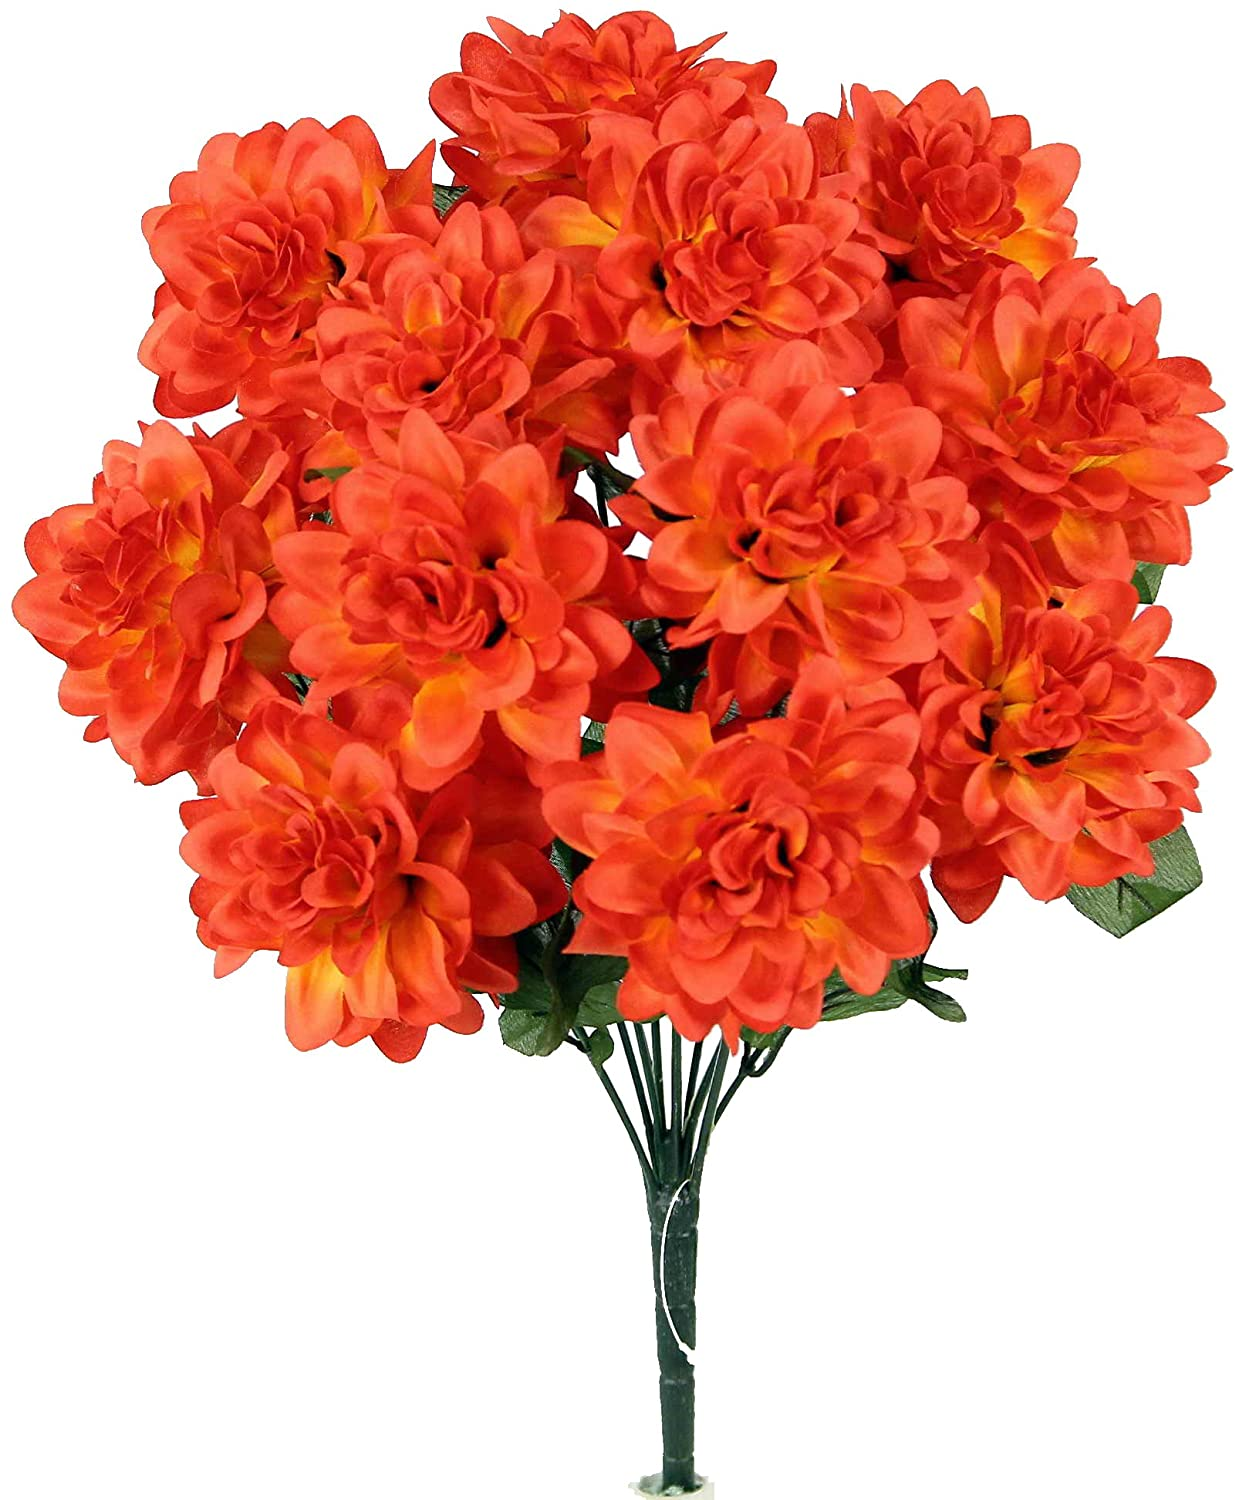 2 Pieces or Decoration for Home Office /& Wedding Orange Admired By Nature 12 Stems Artificial Full Blooming Dahlia for Mothers Day gift Restaurant